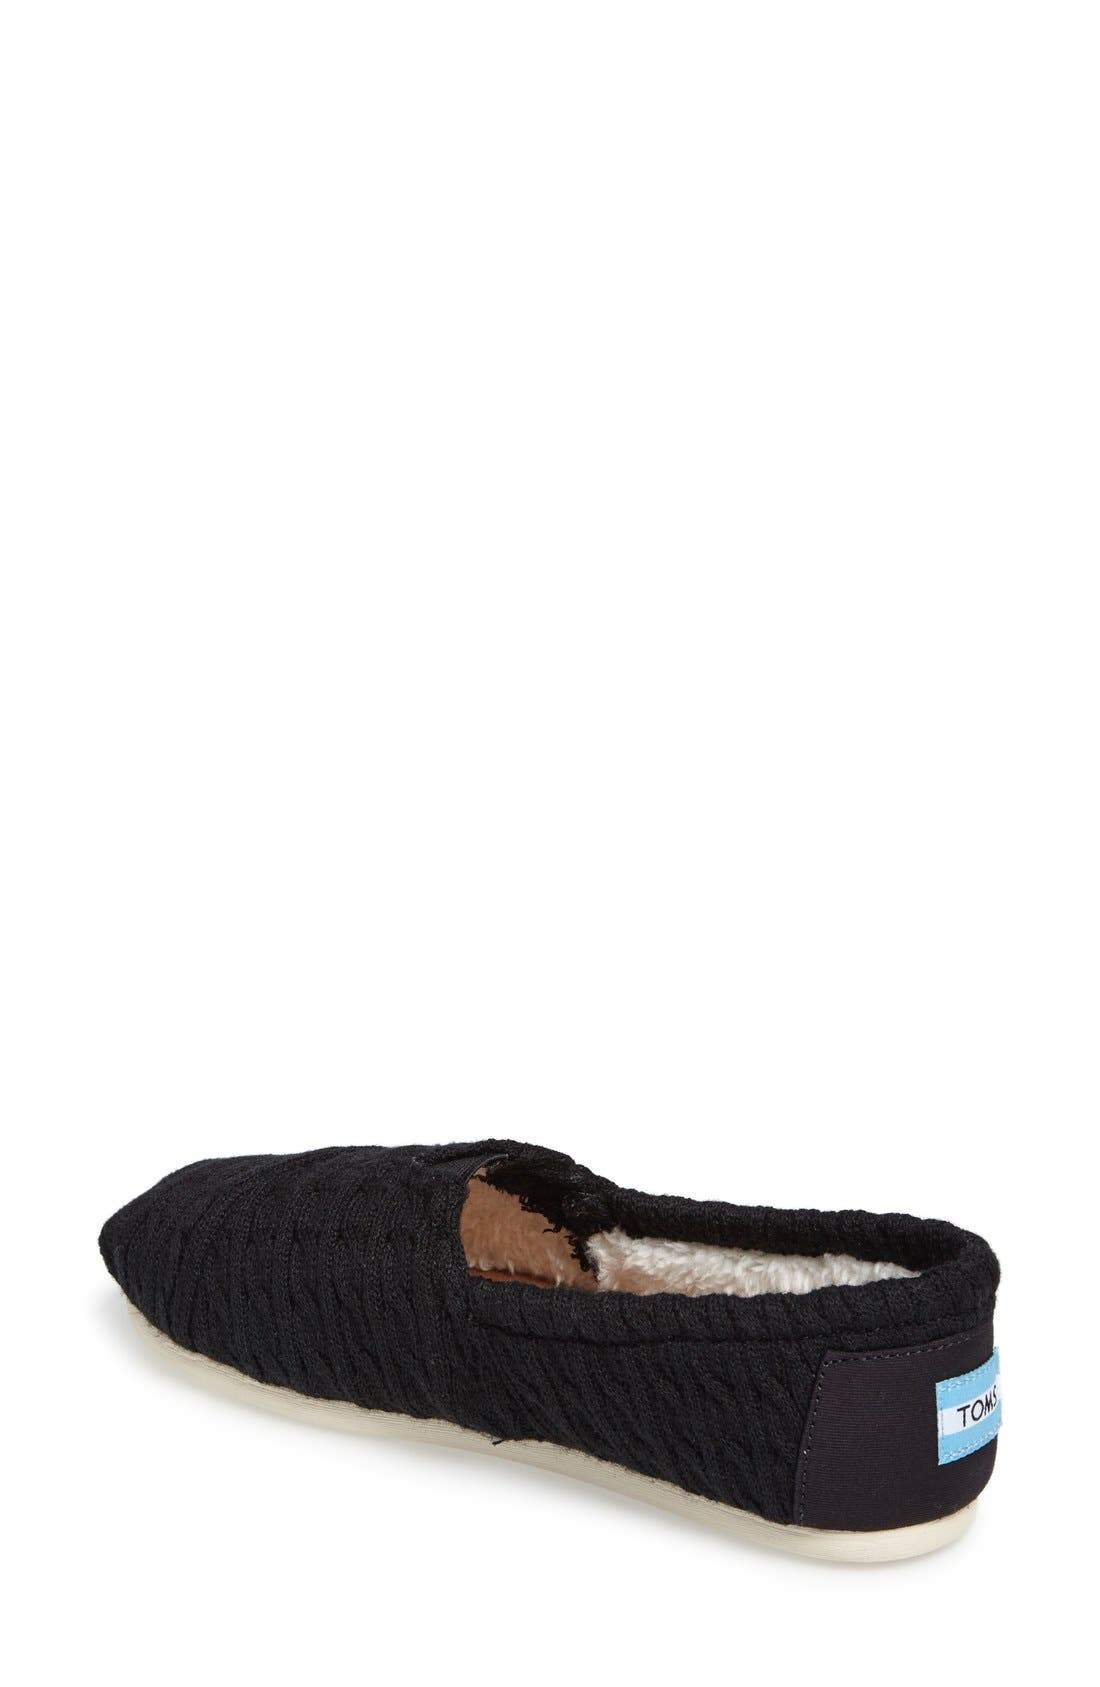 Alternate Image 2  - TOMS 'Classic Knit' Slip-On (Women)